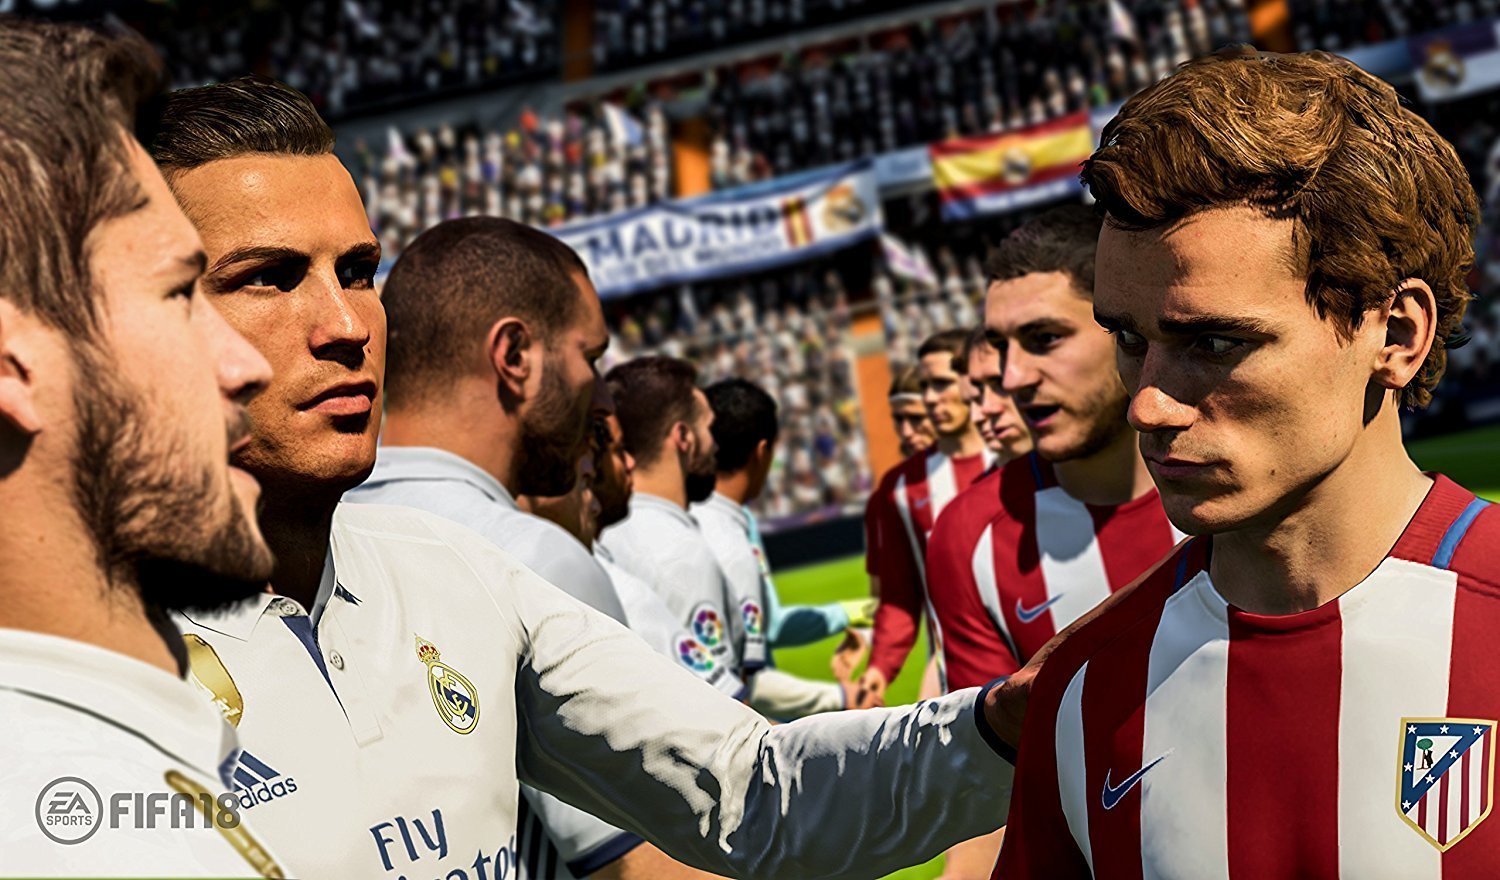 FIFA 18 for Xbox One image